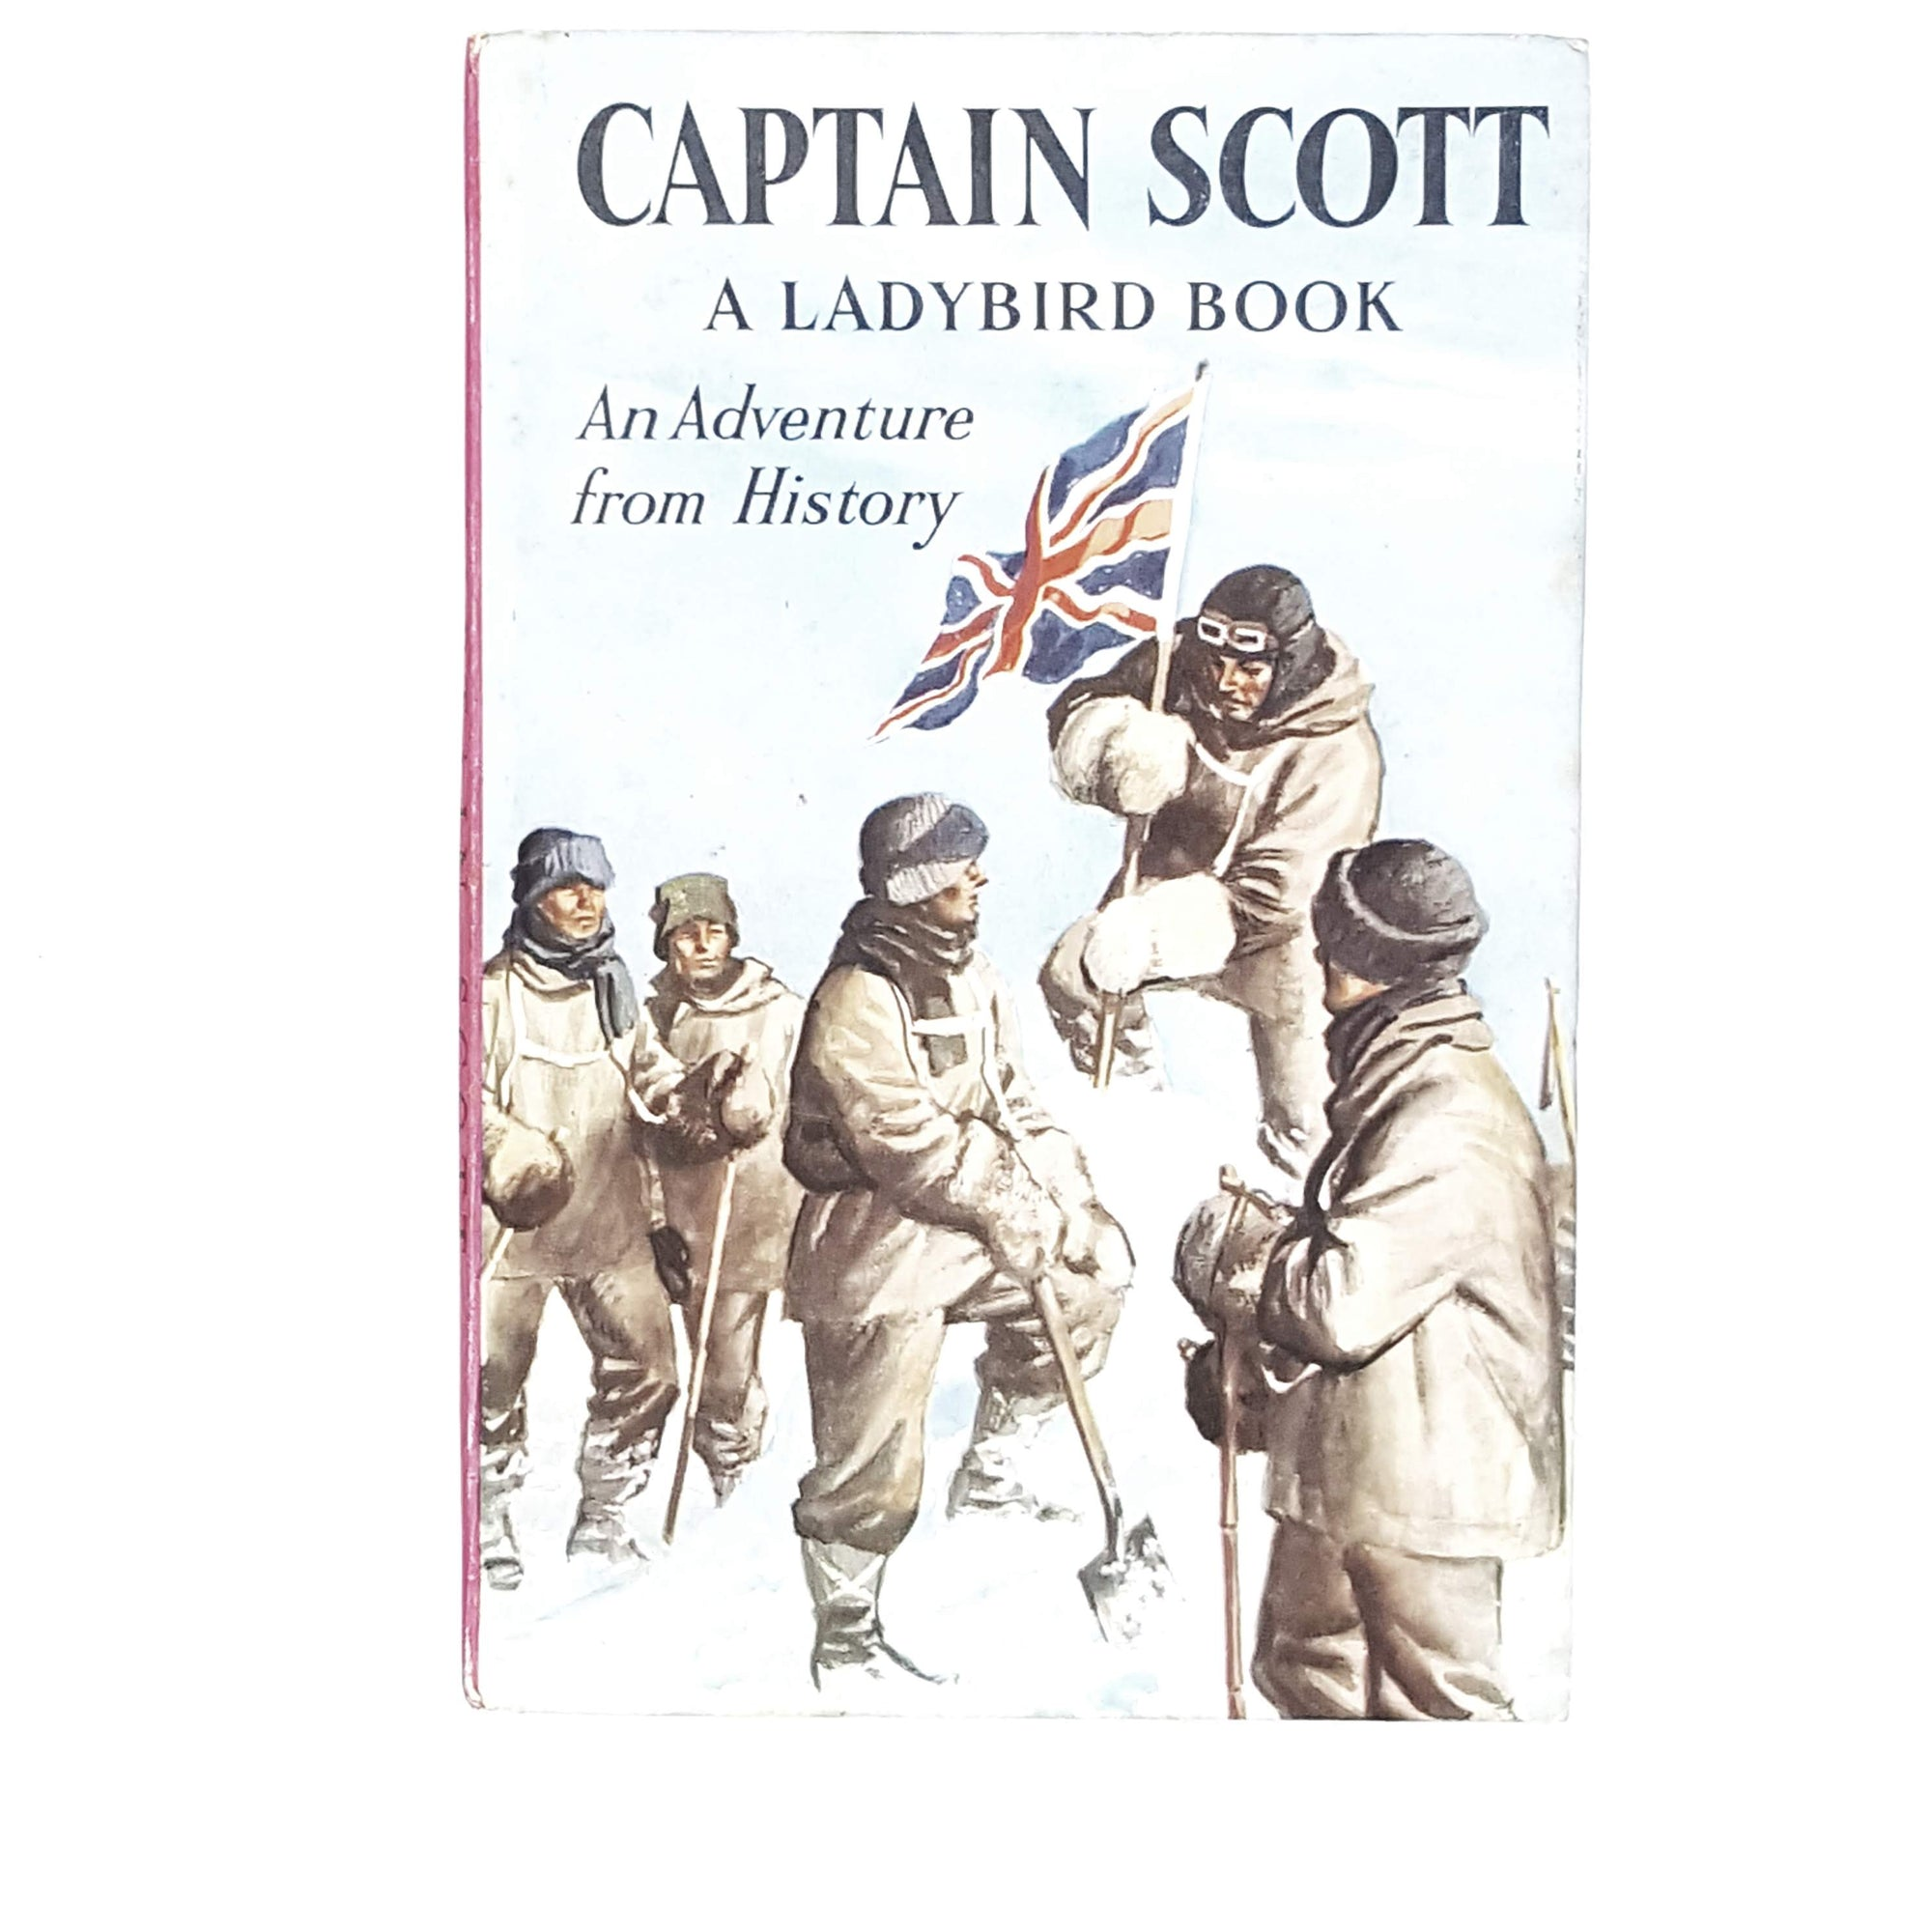 ladybird-history-captain-scott-1963-kindergarten-books-country-house-library